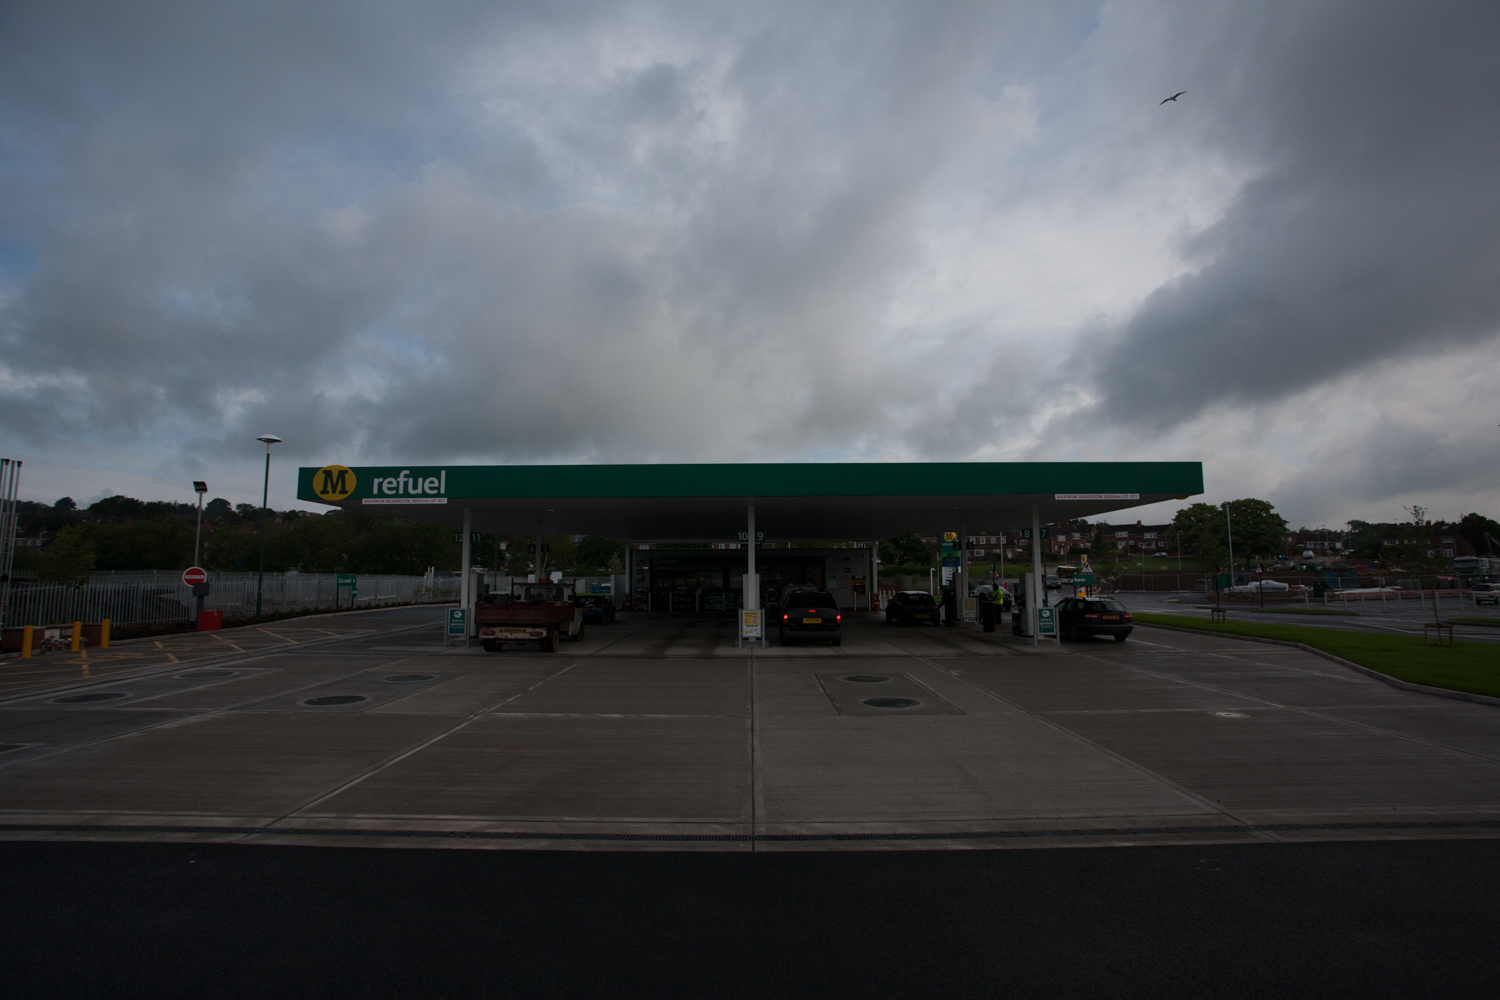 Petrol station, Morrisons, Exeter, by Industrial Photographer Rick McEvoy